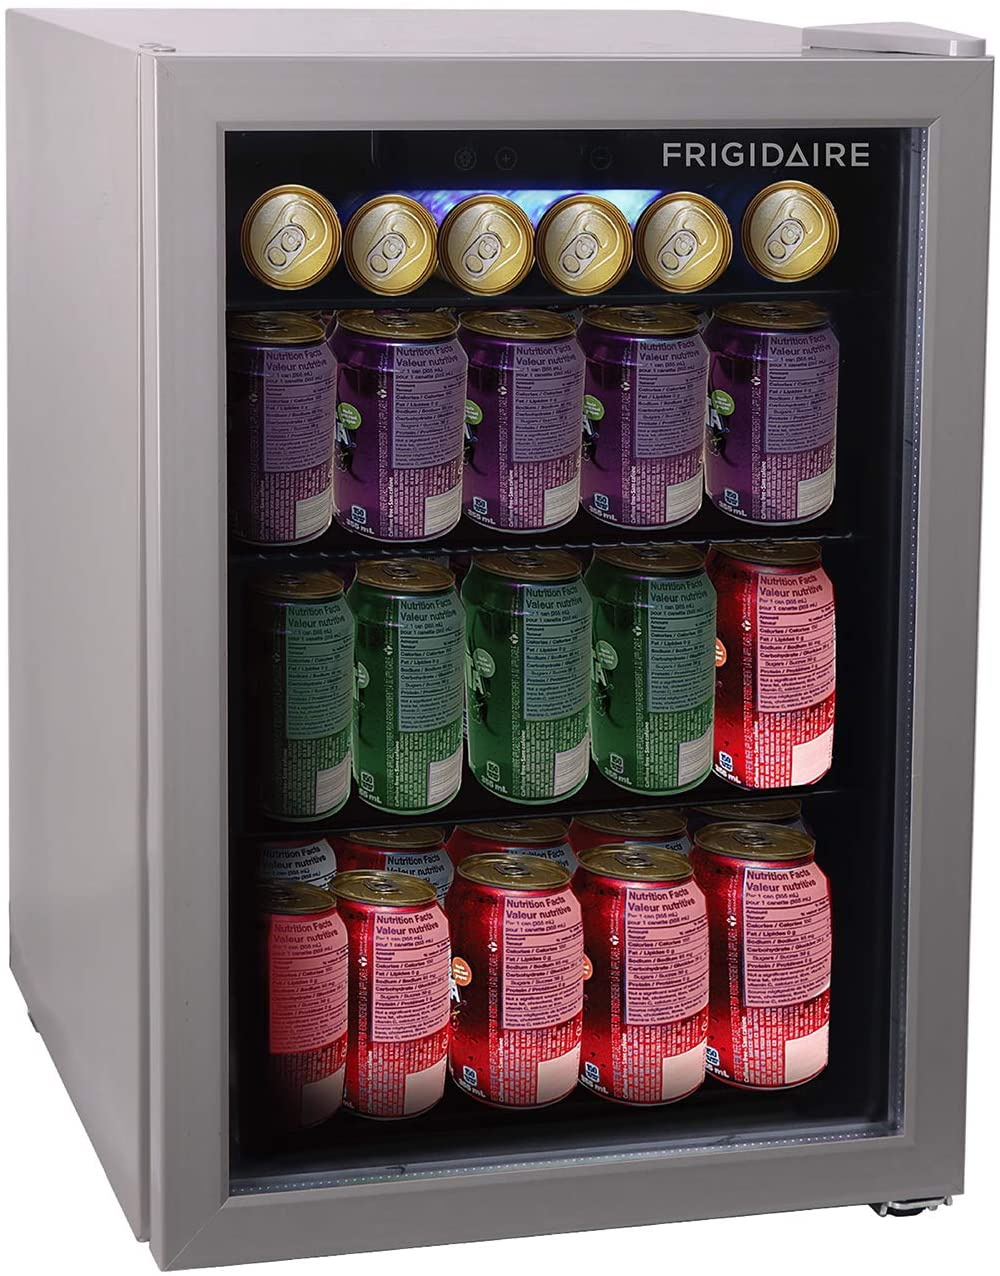 FRIGIDAIRE EFMIS9000-AMZ Freestanding Beverage Center Fridge-Fits 25 Bottles OR 60 Cans, Black